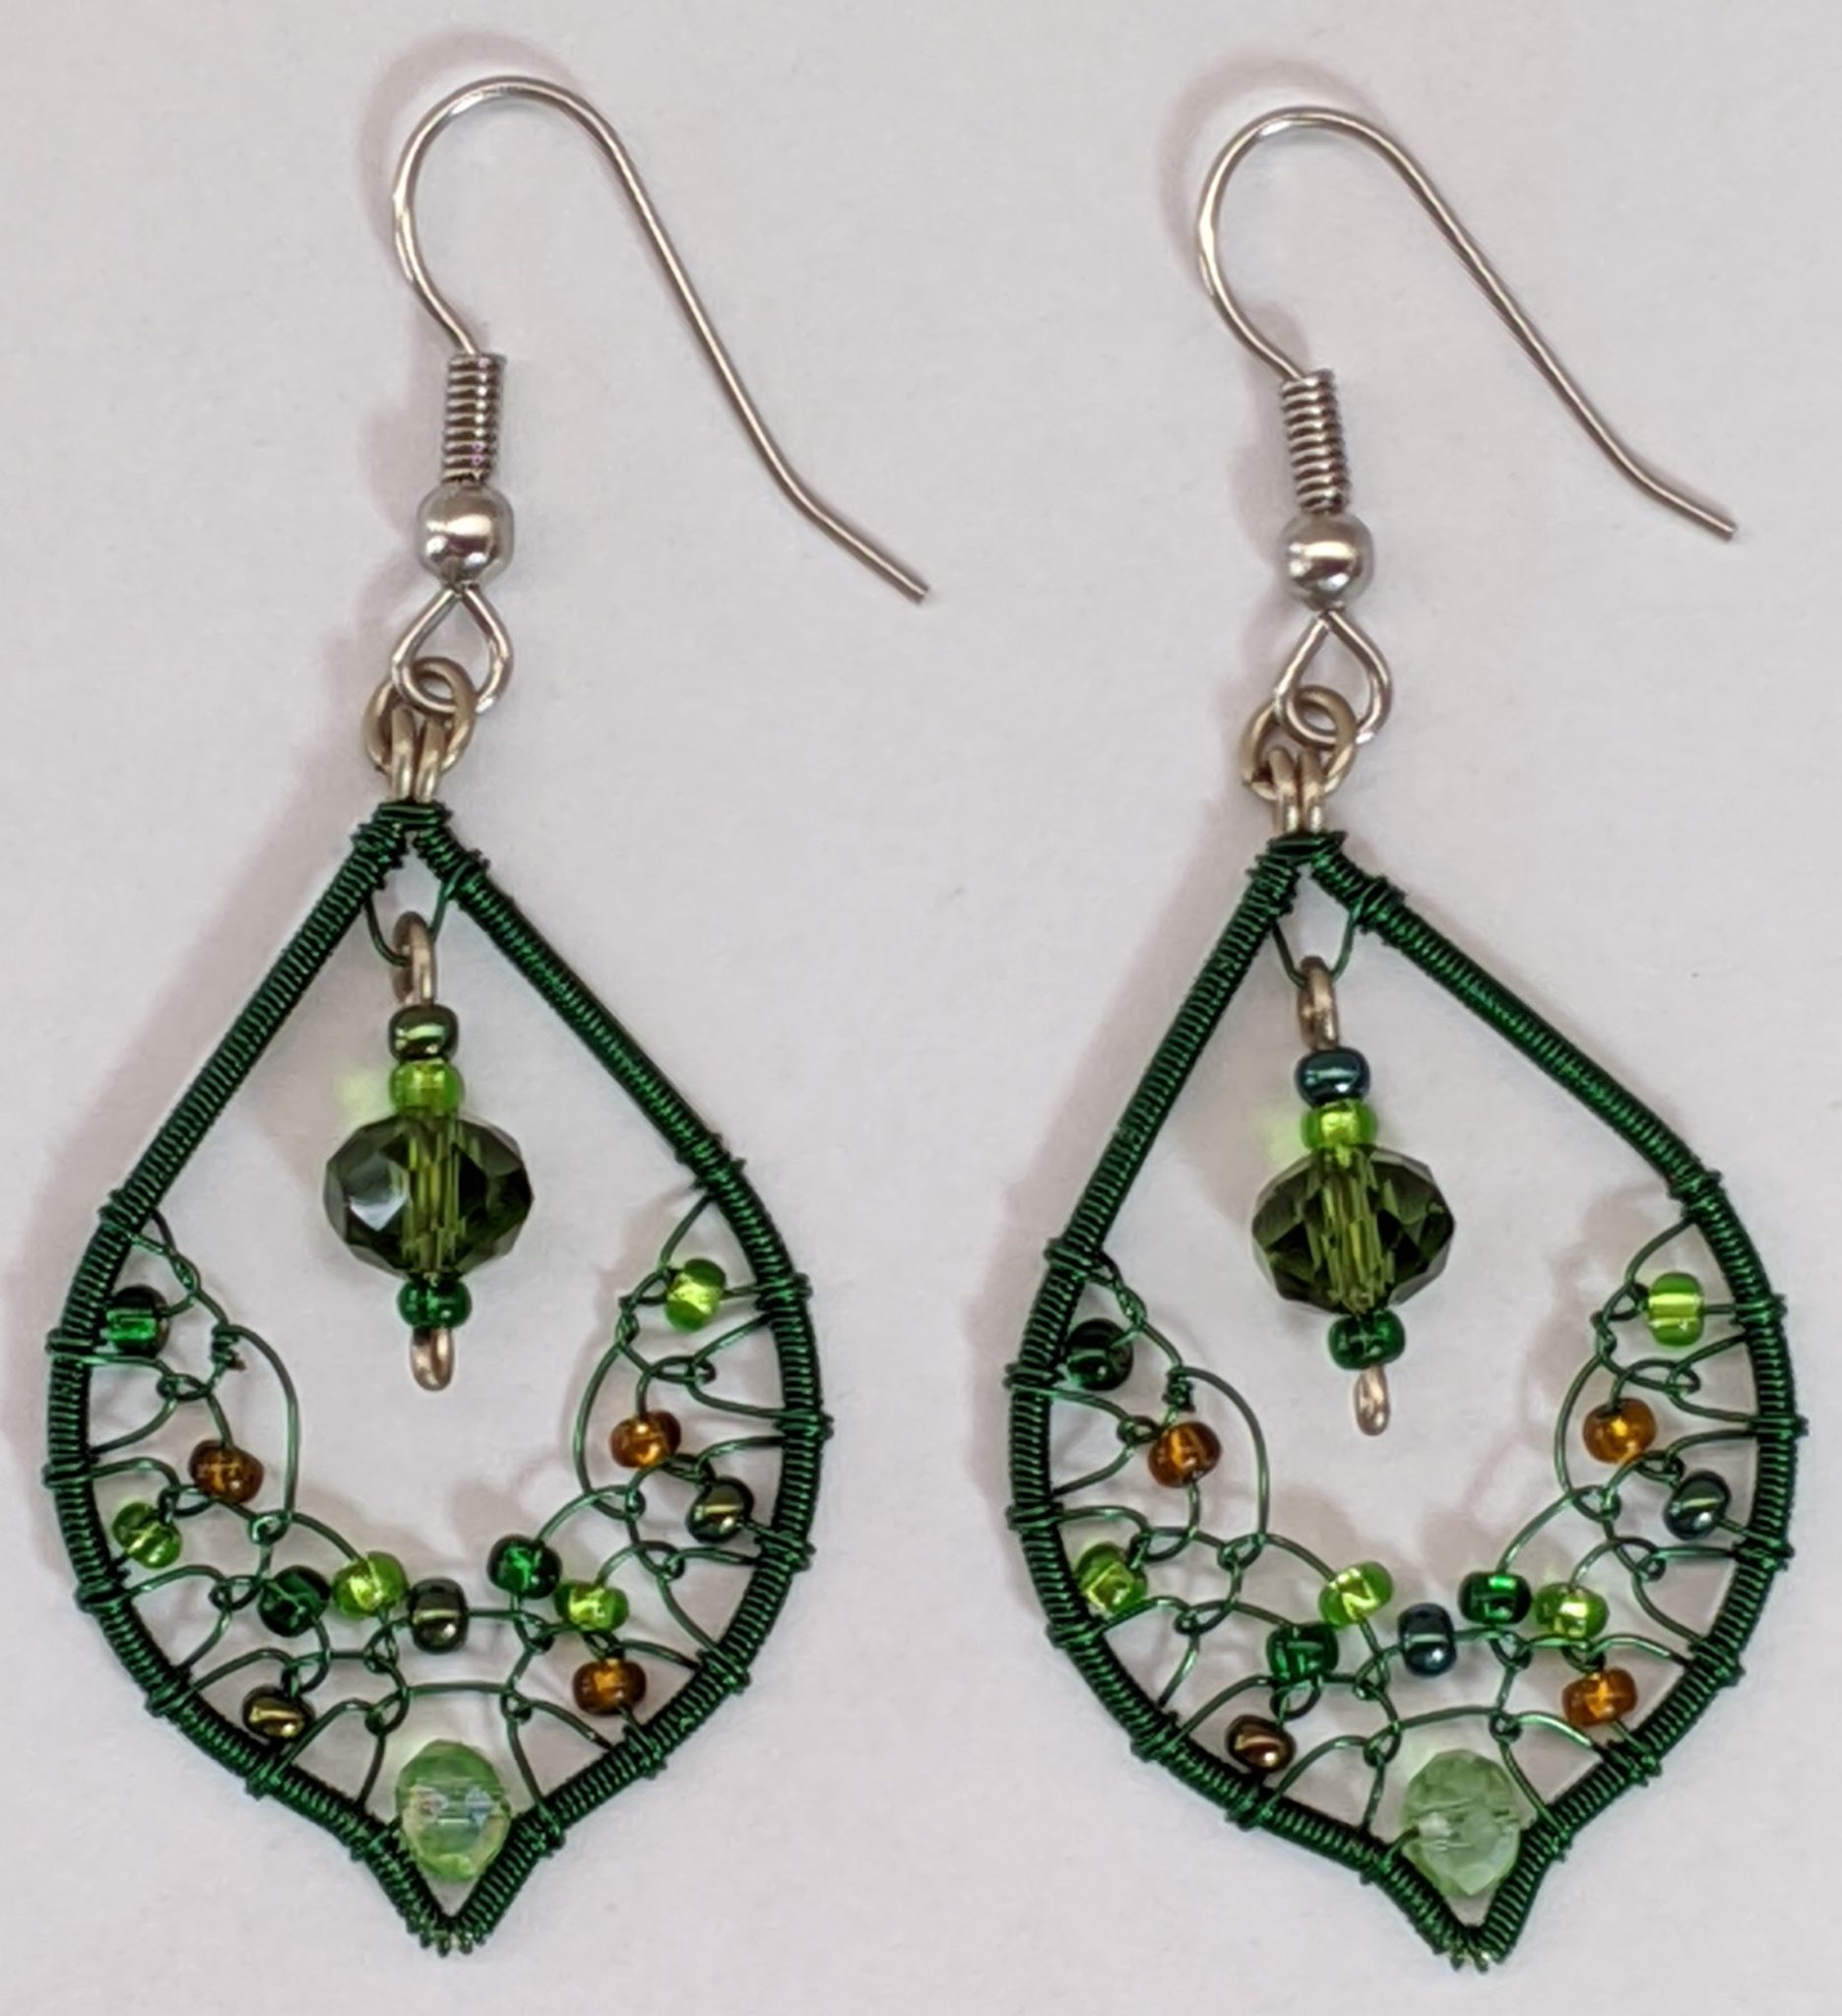 Arabian Nights Earrings - Greens